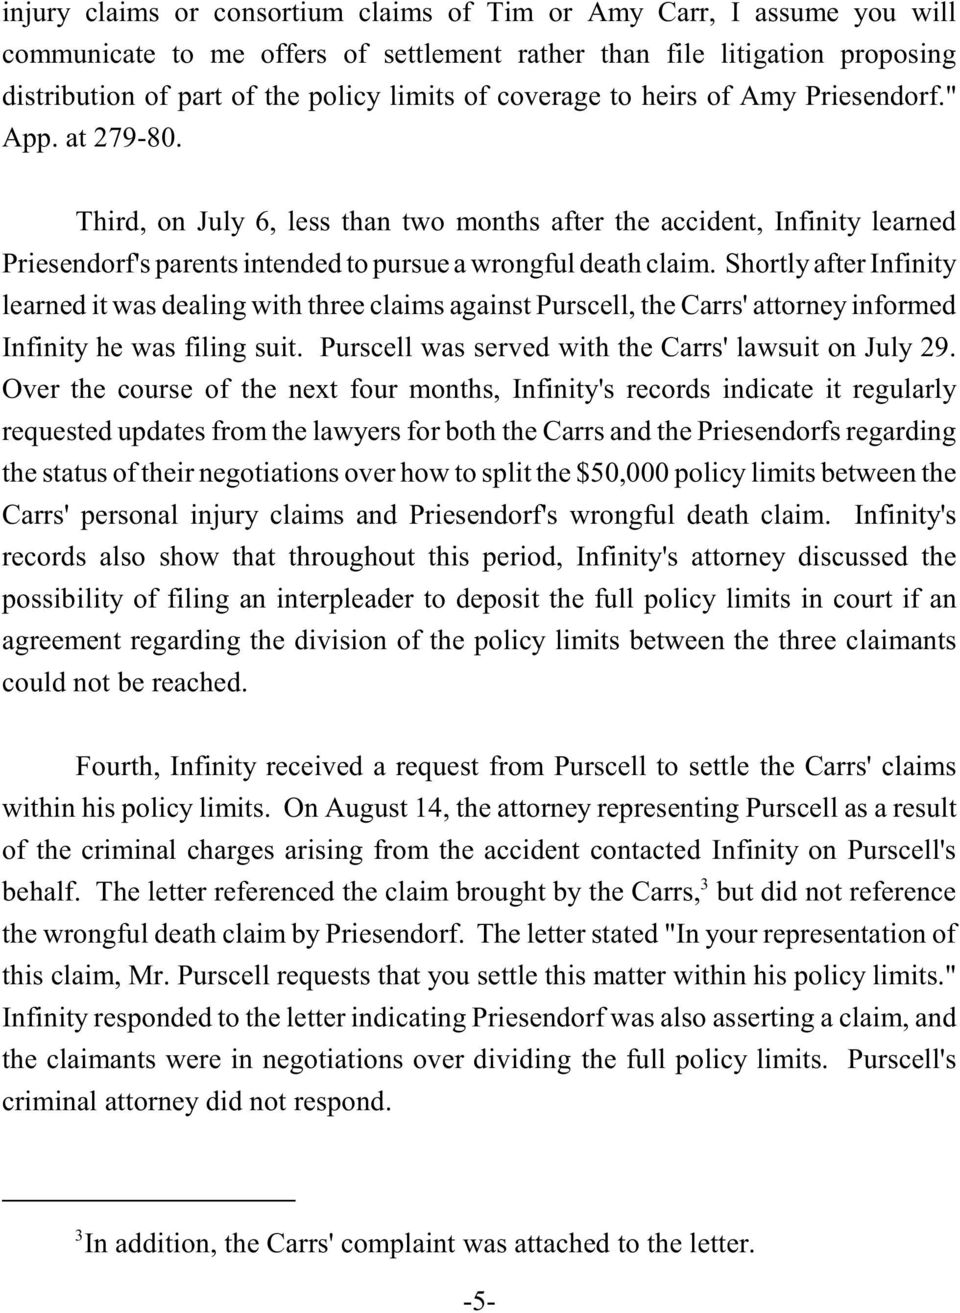 Shortly after Infinity learned it was dealing with three claims against Purscell, the Carrs' attorney informed Infinity he was filing suit. Purscell was served with the Carrs' lawsuit on July 29.